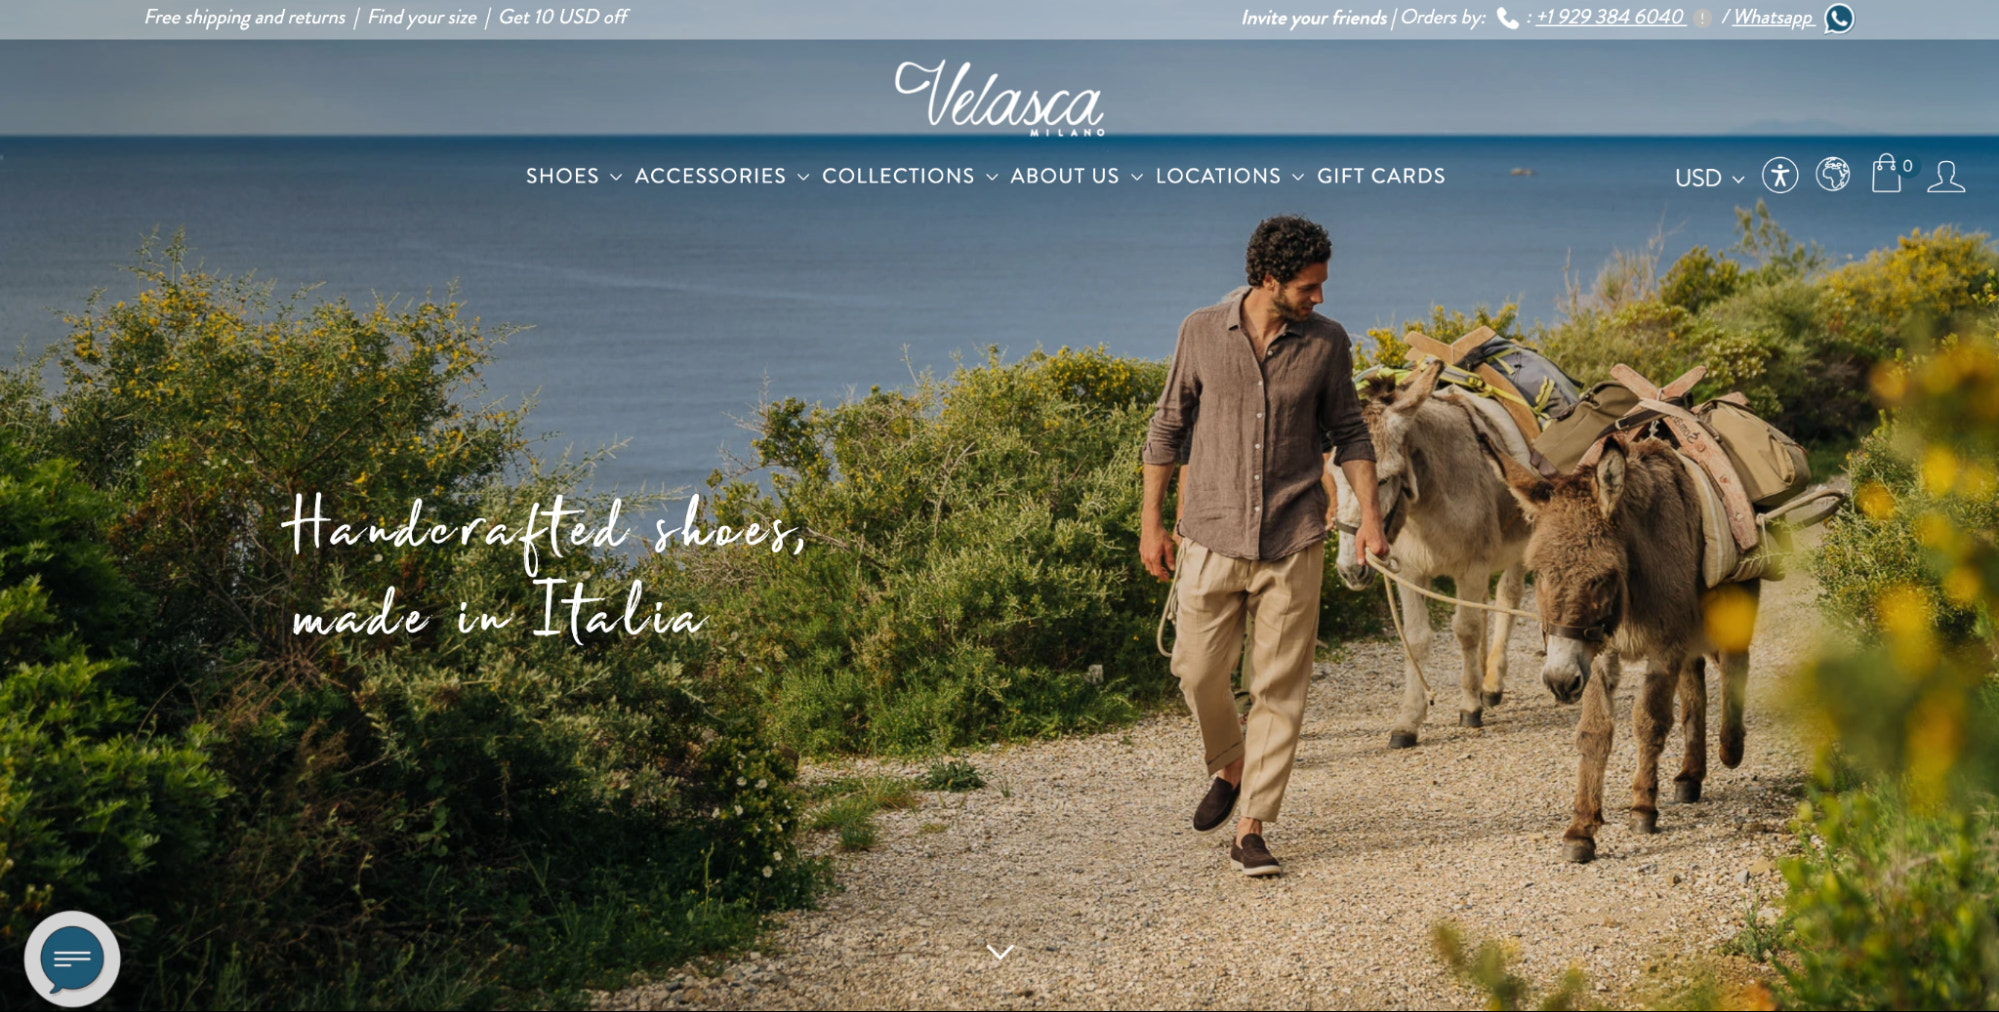 Velasca's web design focuses on lifestyle photography featuring its shoes, belts, and bags